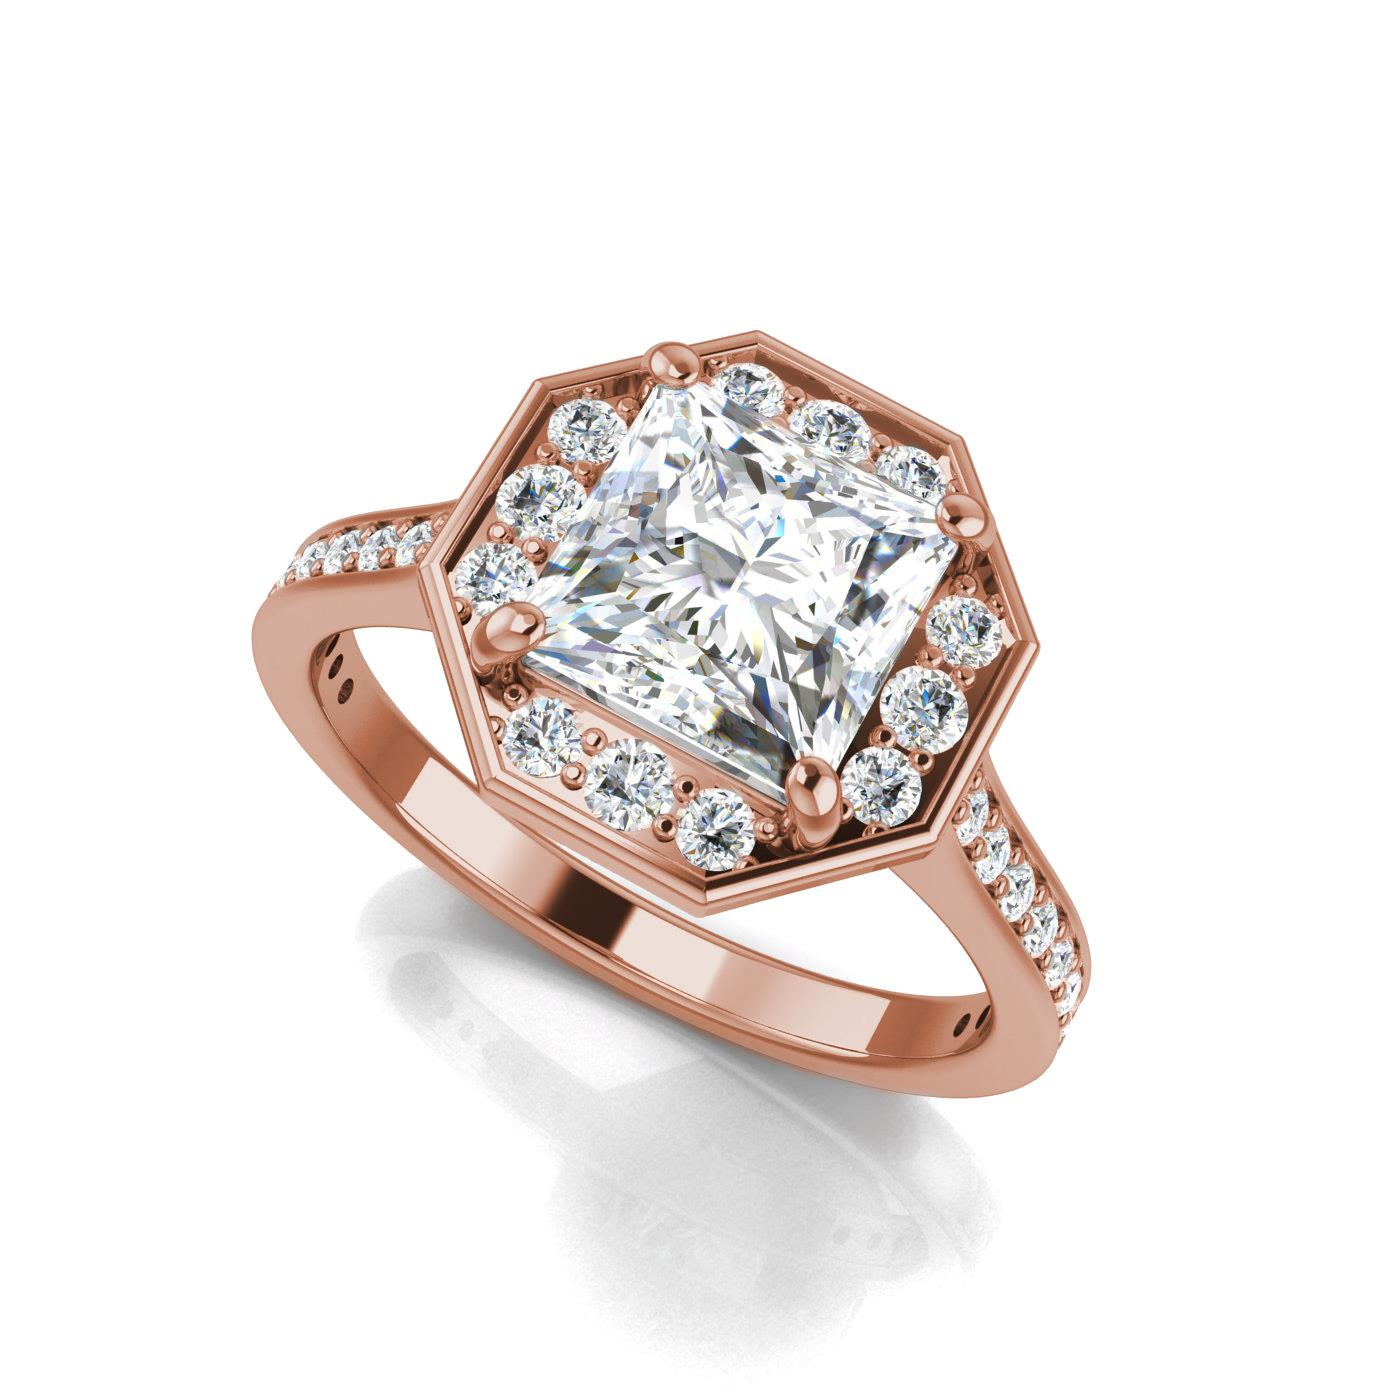 rings ring helpful dream my topic rose diamond engagement img cut